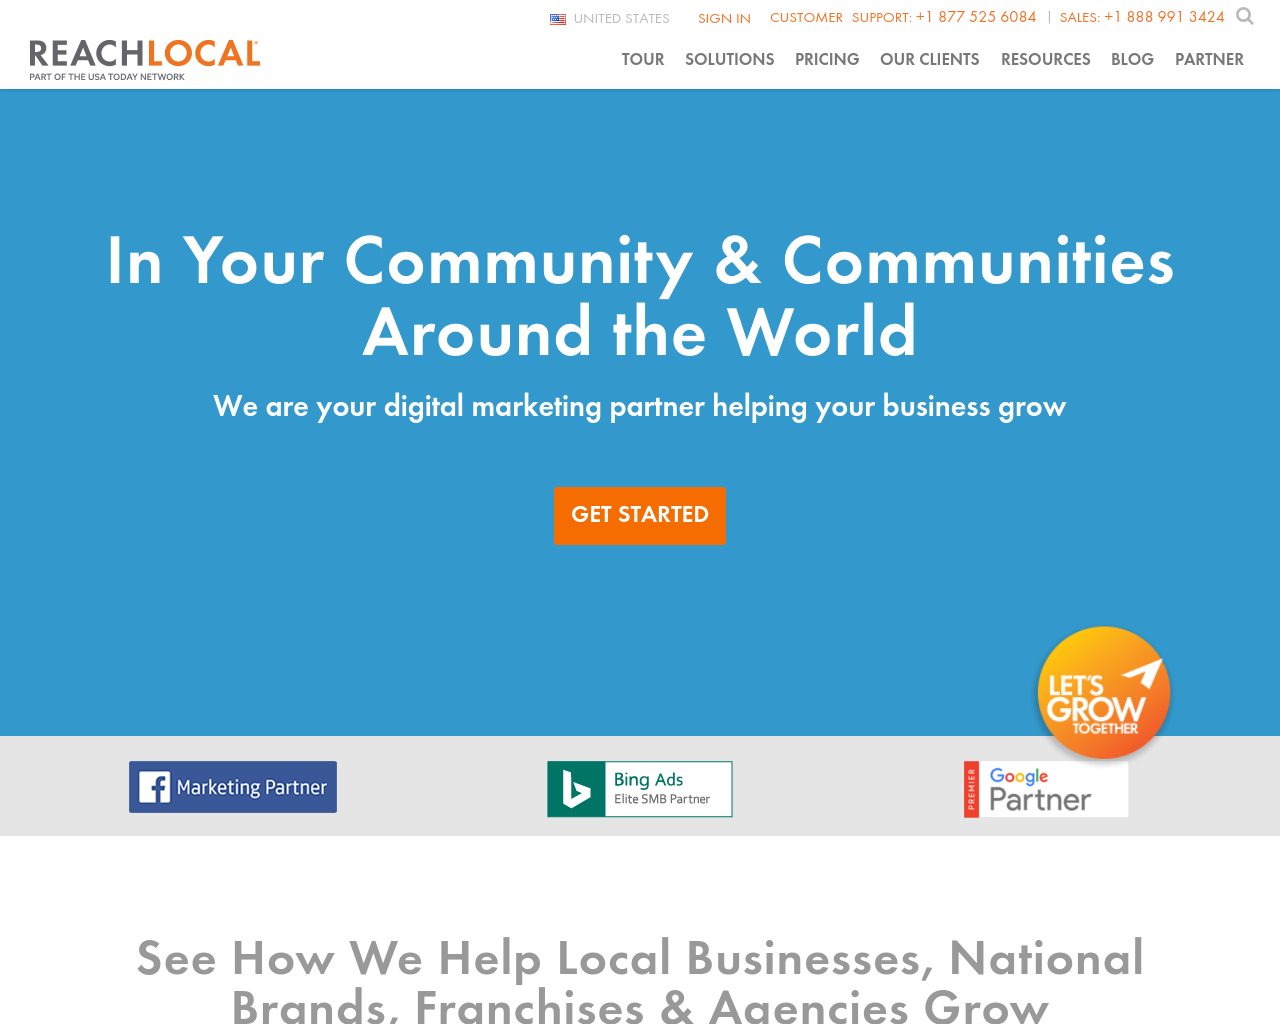 ReachLocal-Advertising-Reviews-Pricing